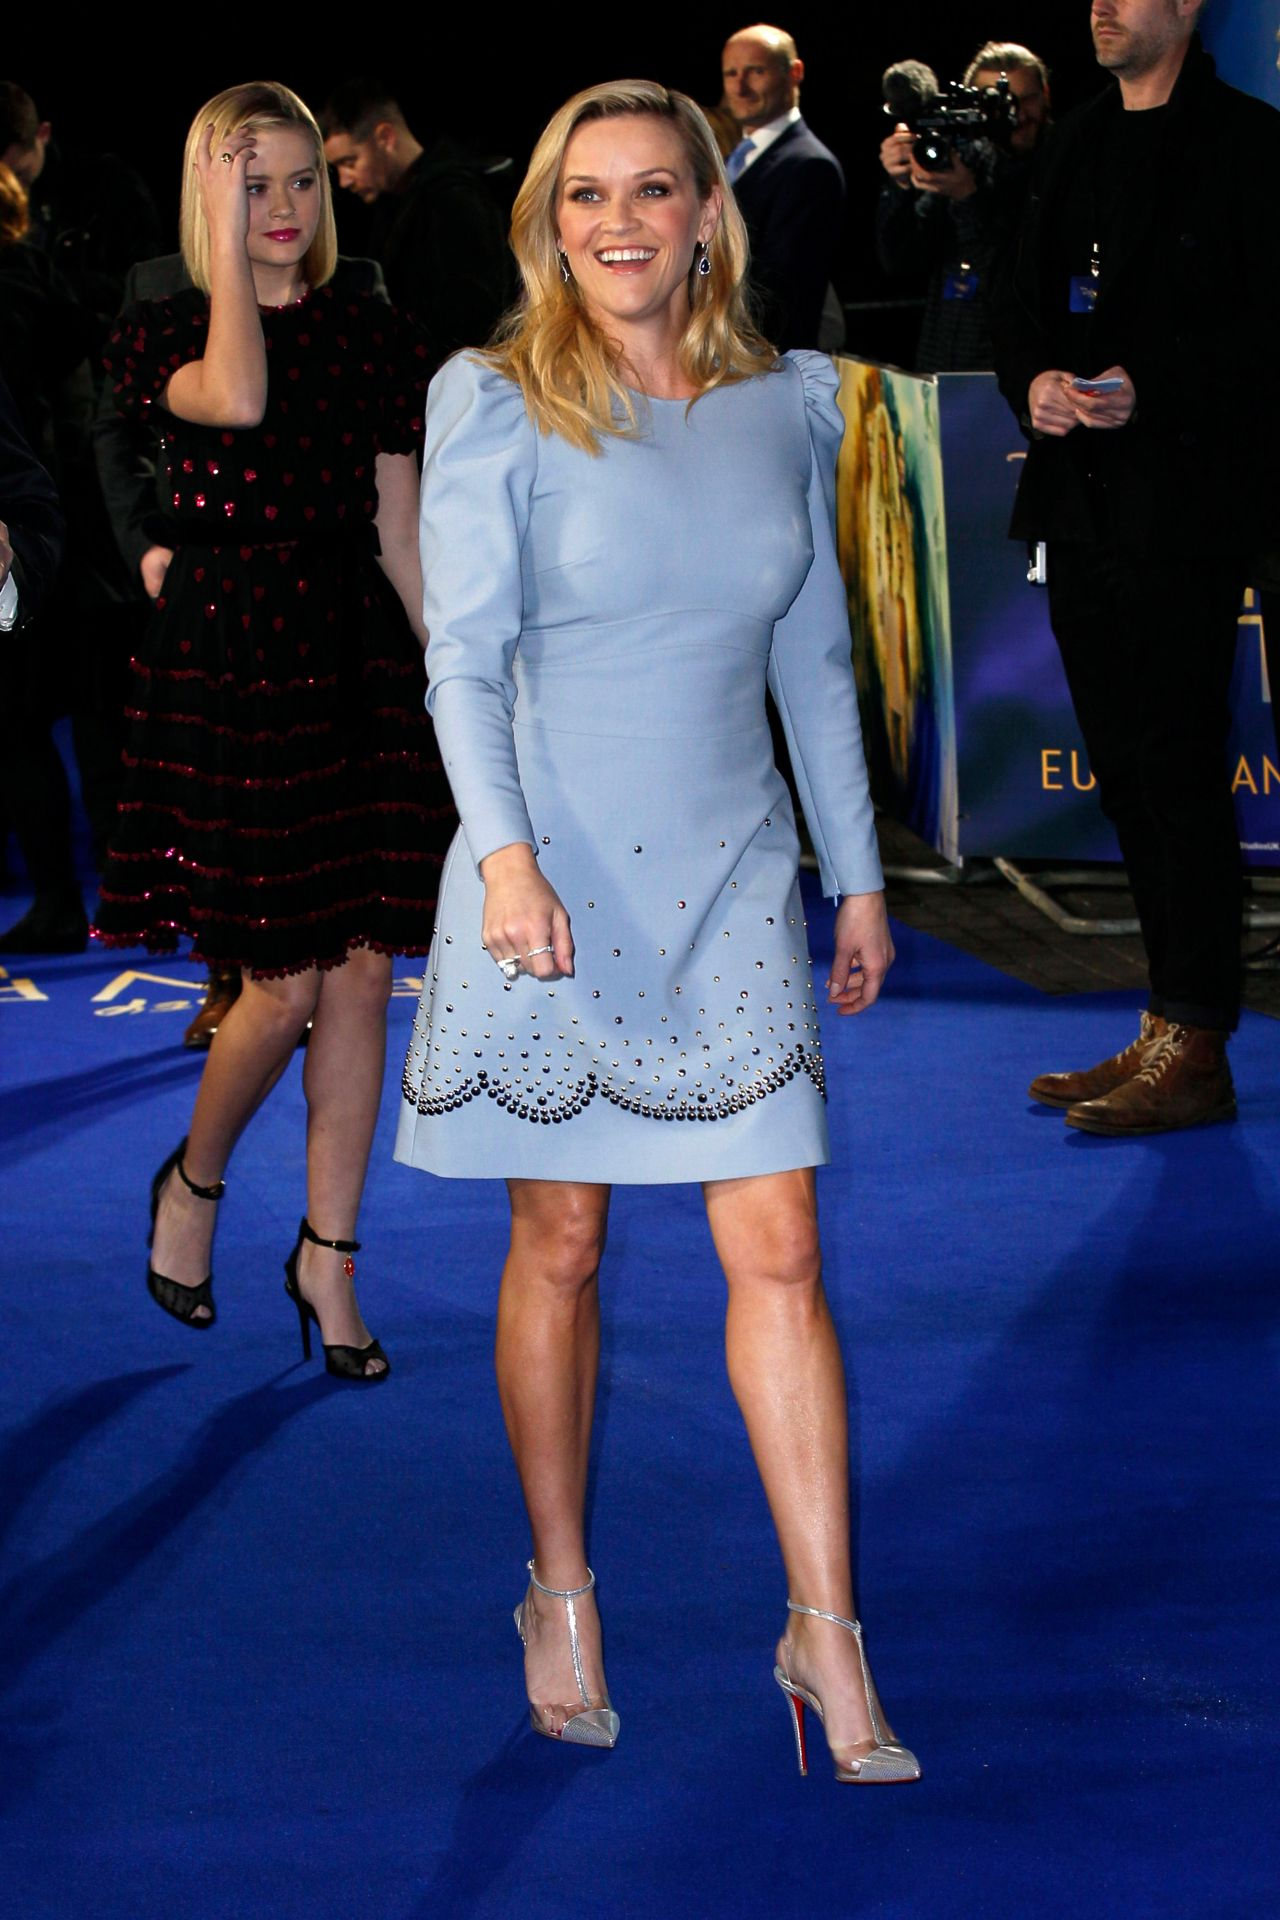 http://celebmafia.com/wp-content/uploads/2018/03/reese-witherspoon-a-wrinkle-in-time-premiere-in-london-5.jpg